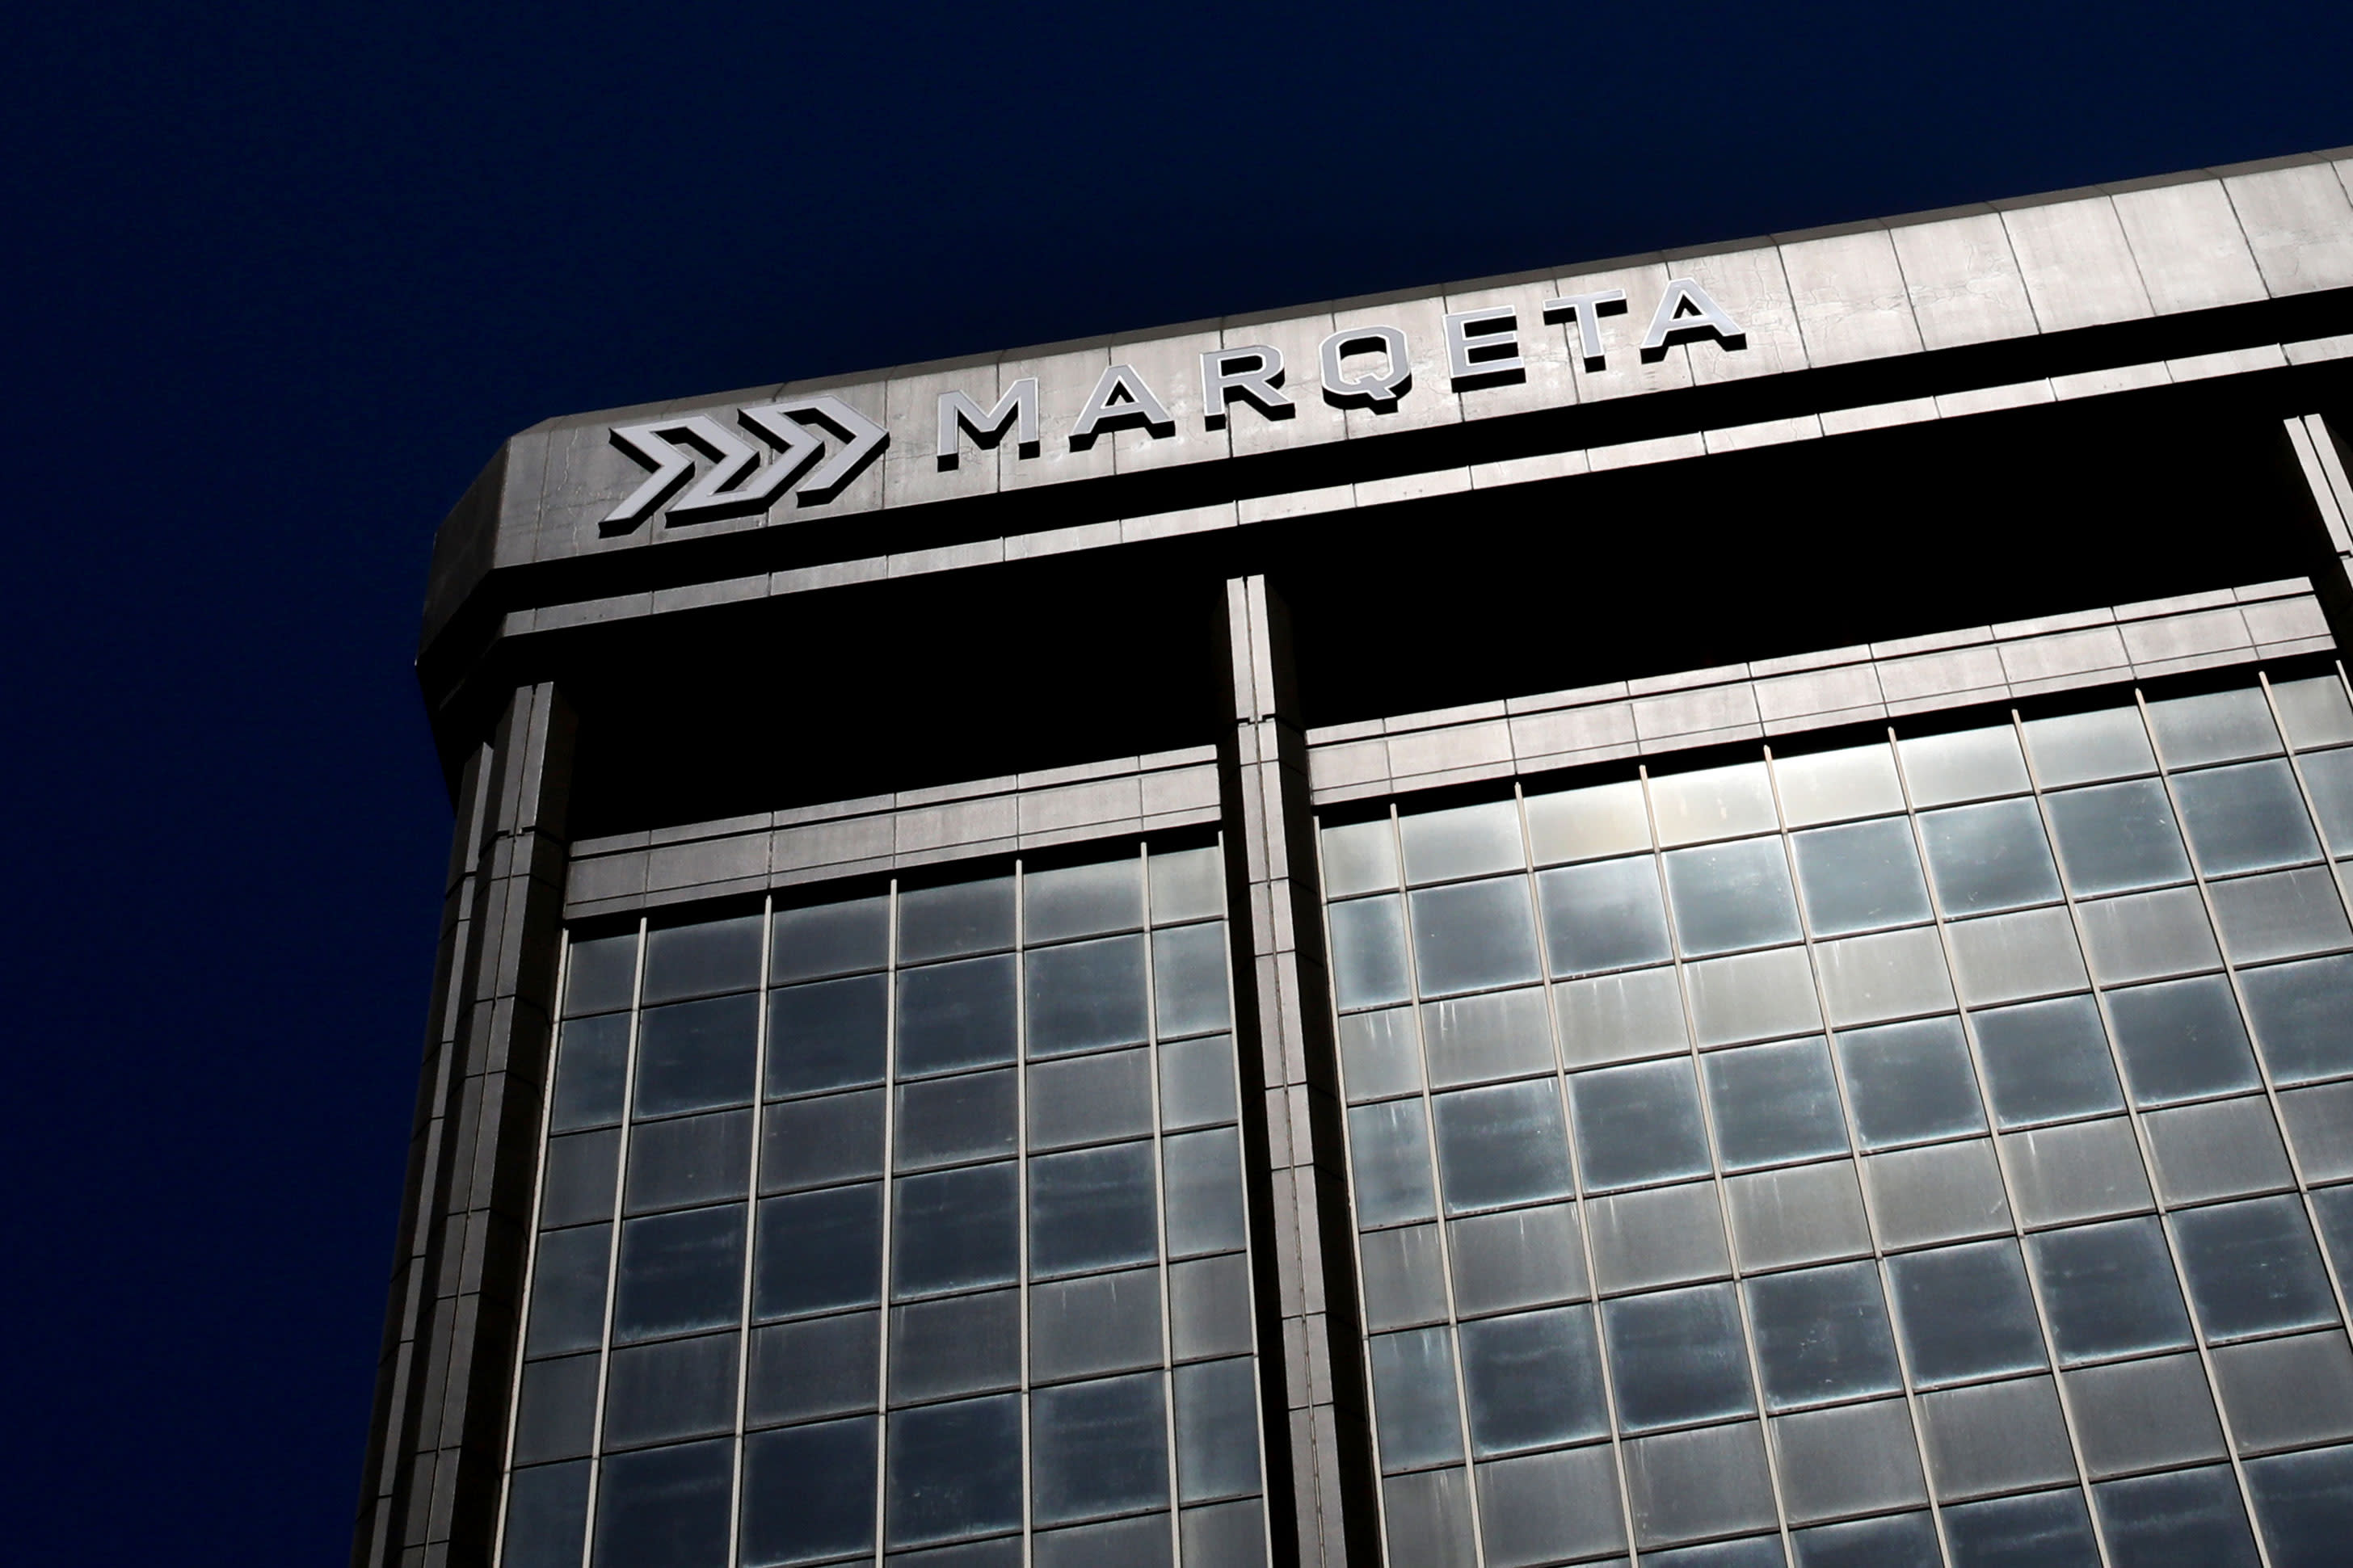 Marqeta deposits S-1 as worth over $ 16 billion in private markets